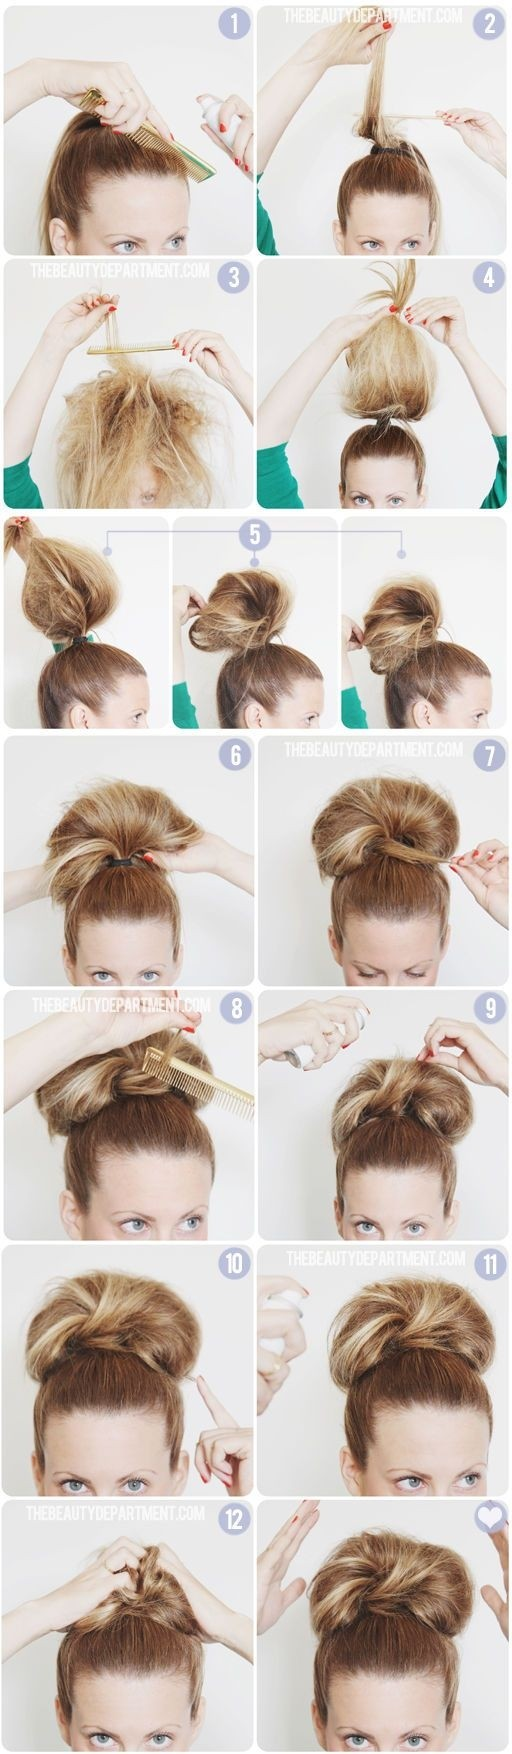 10 Super Easy Updo Hairstyles Tutorials Popular Haircuts